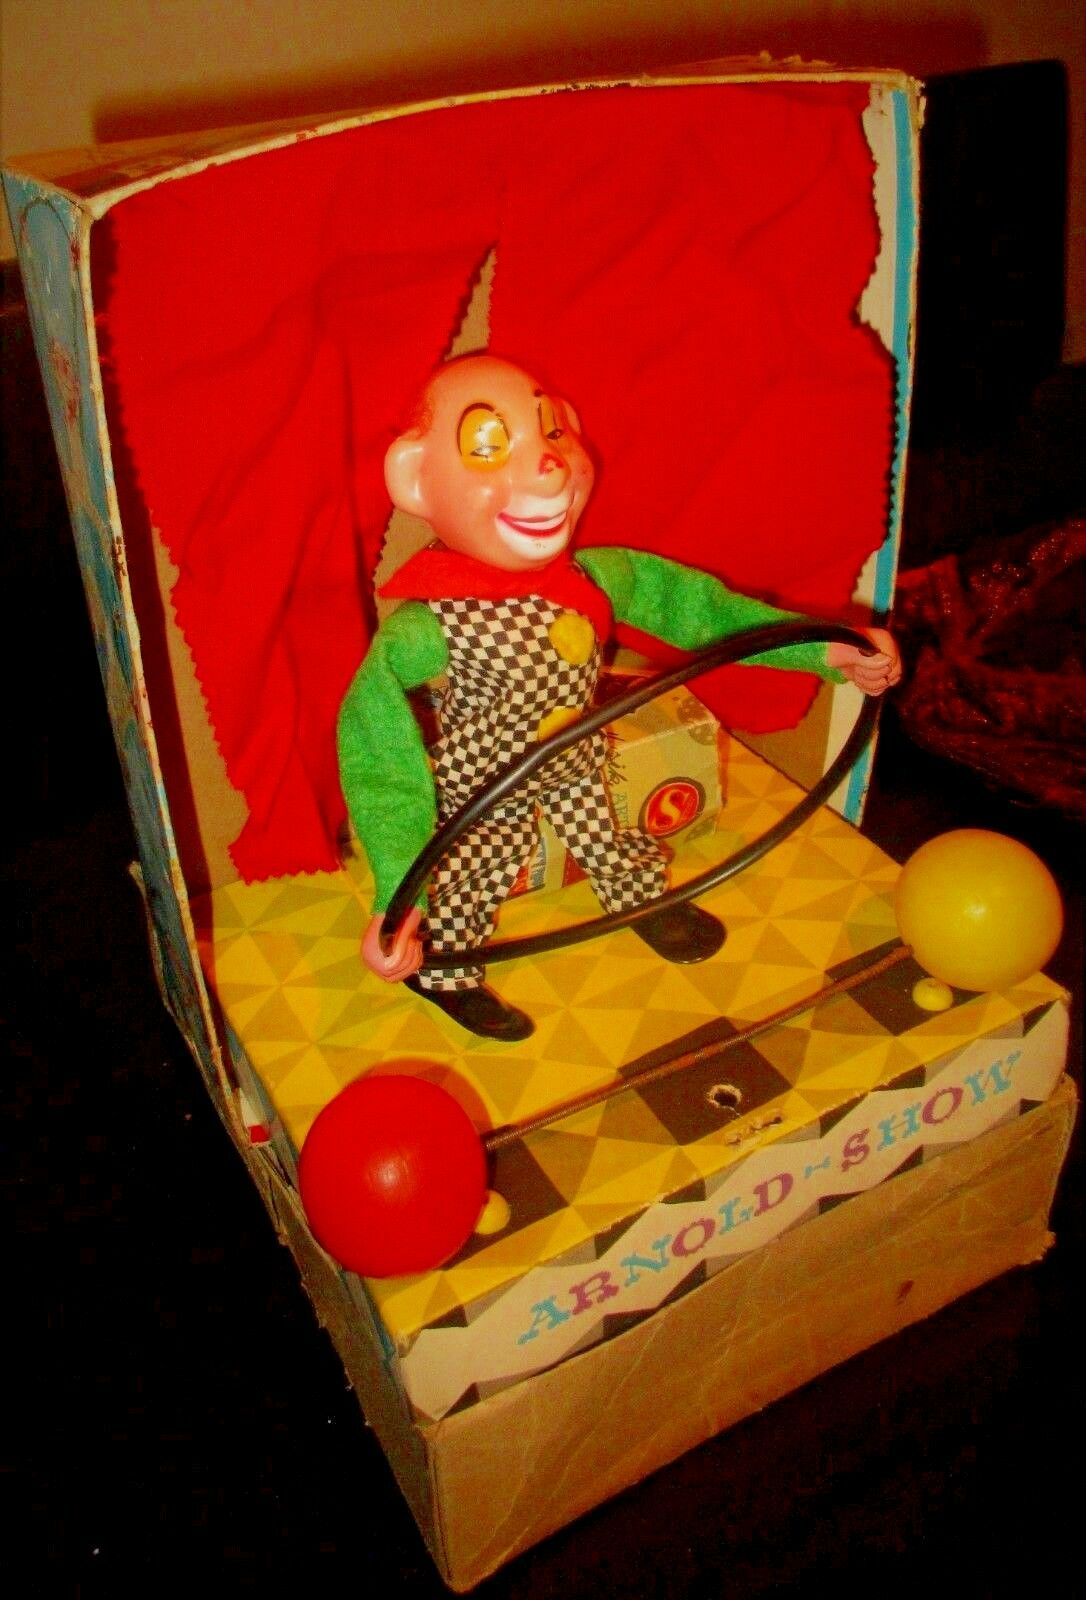 UNIQUE VINTAGE ARNOLD SHOWS - CIRCUS CLOWN CELLULOID CELLULOID CELLULOID W GERMANY MIB 8f382a